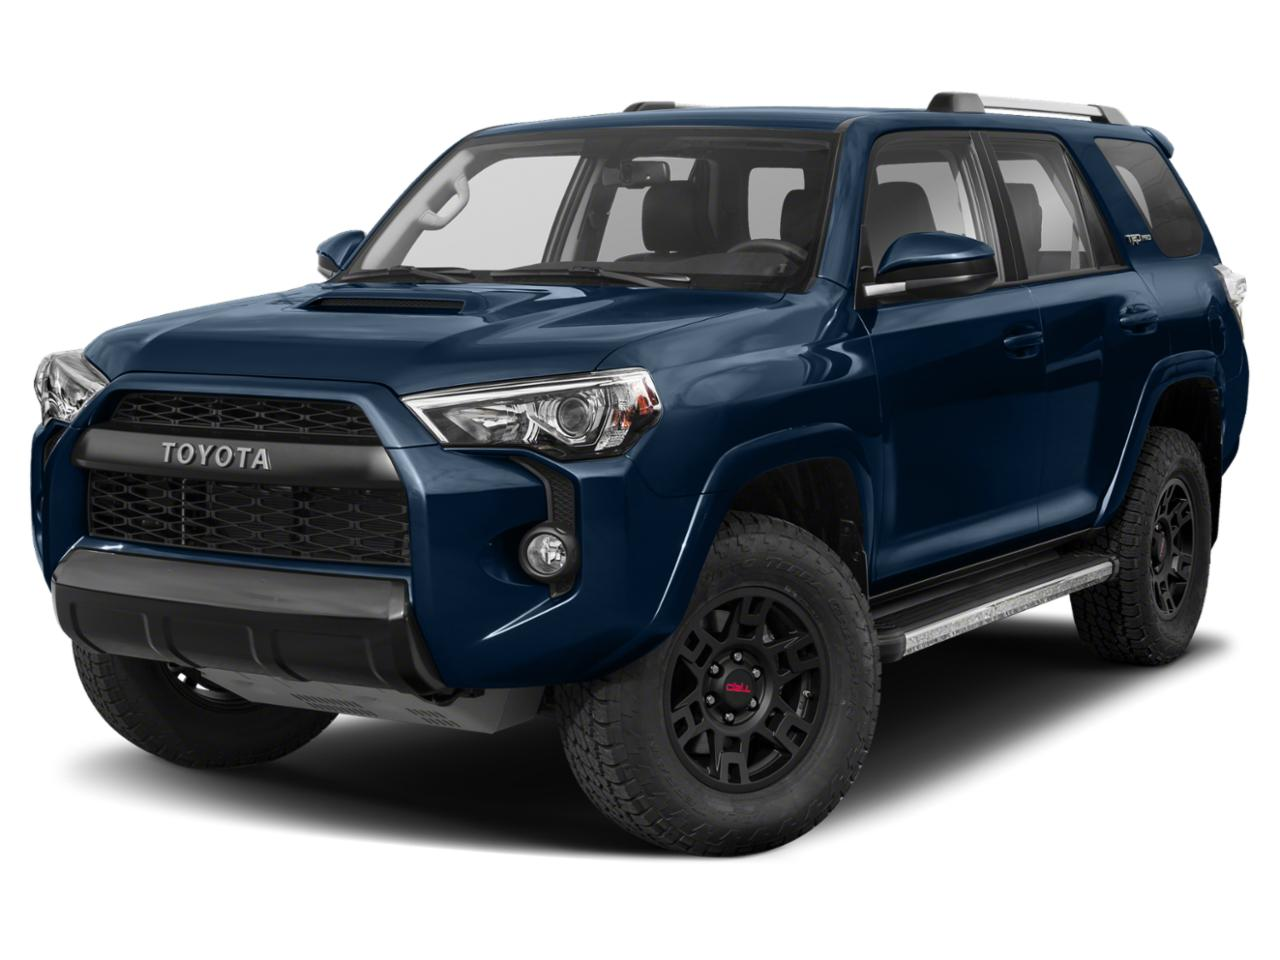 Used 2018 Toyota 4runner For Sale Old Bridge Township Nj Quality Chevrolet